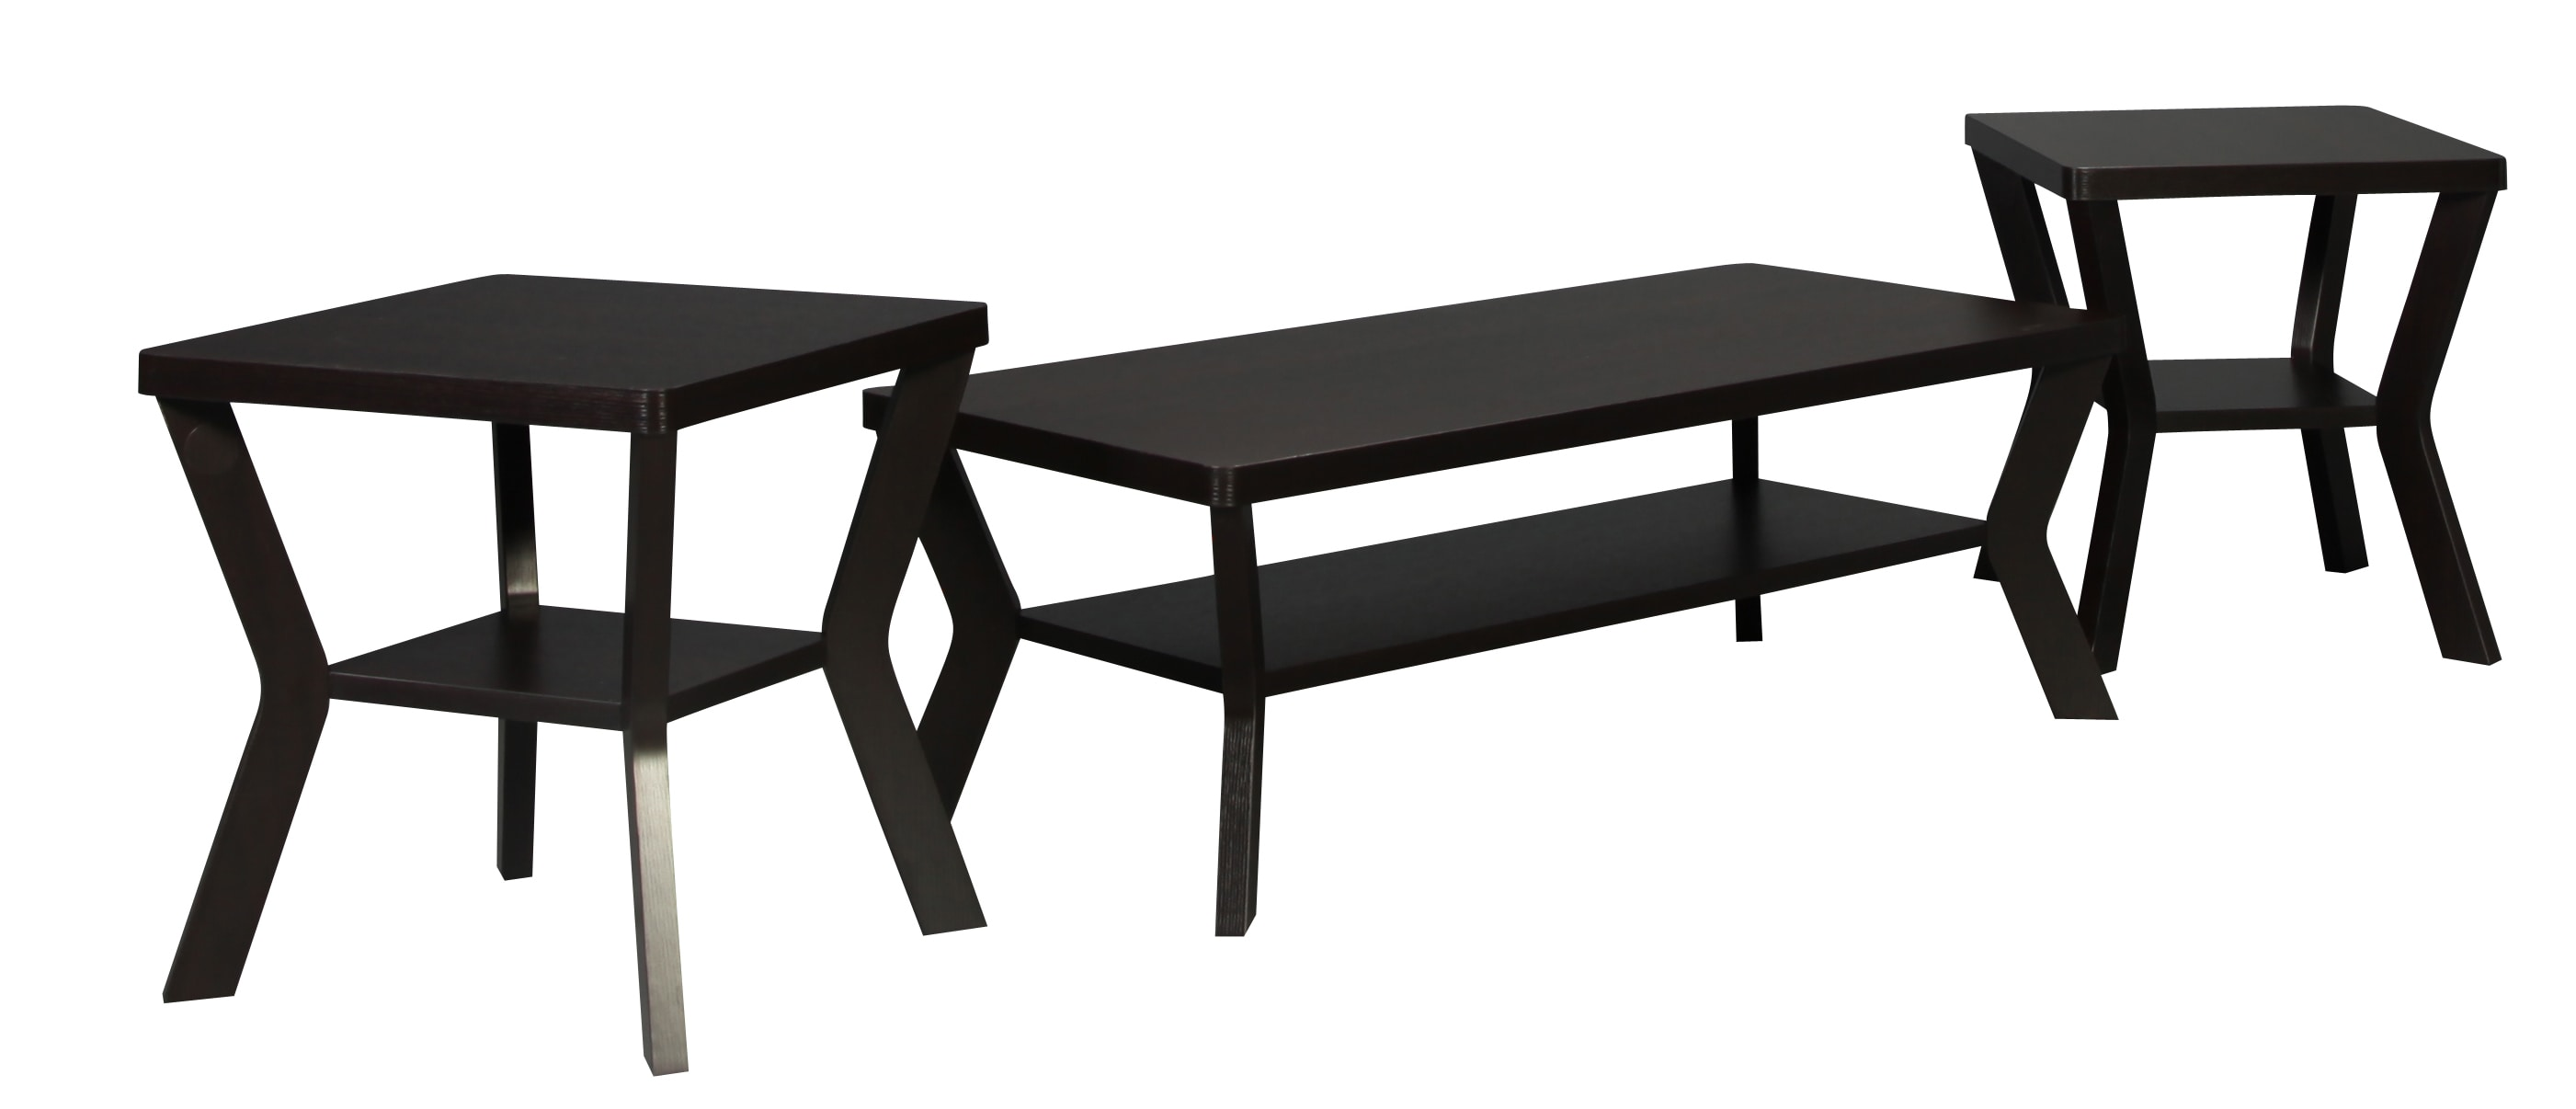 Alanis 3 Pack of Tables